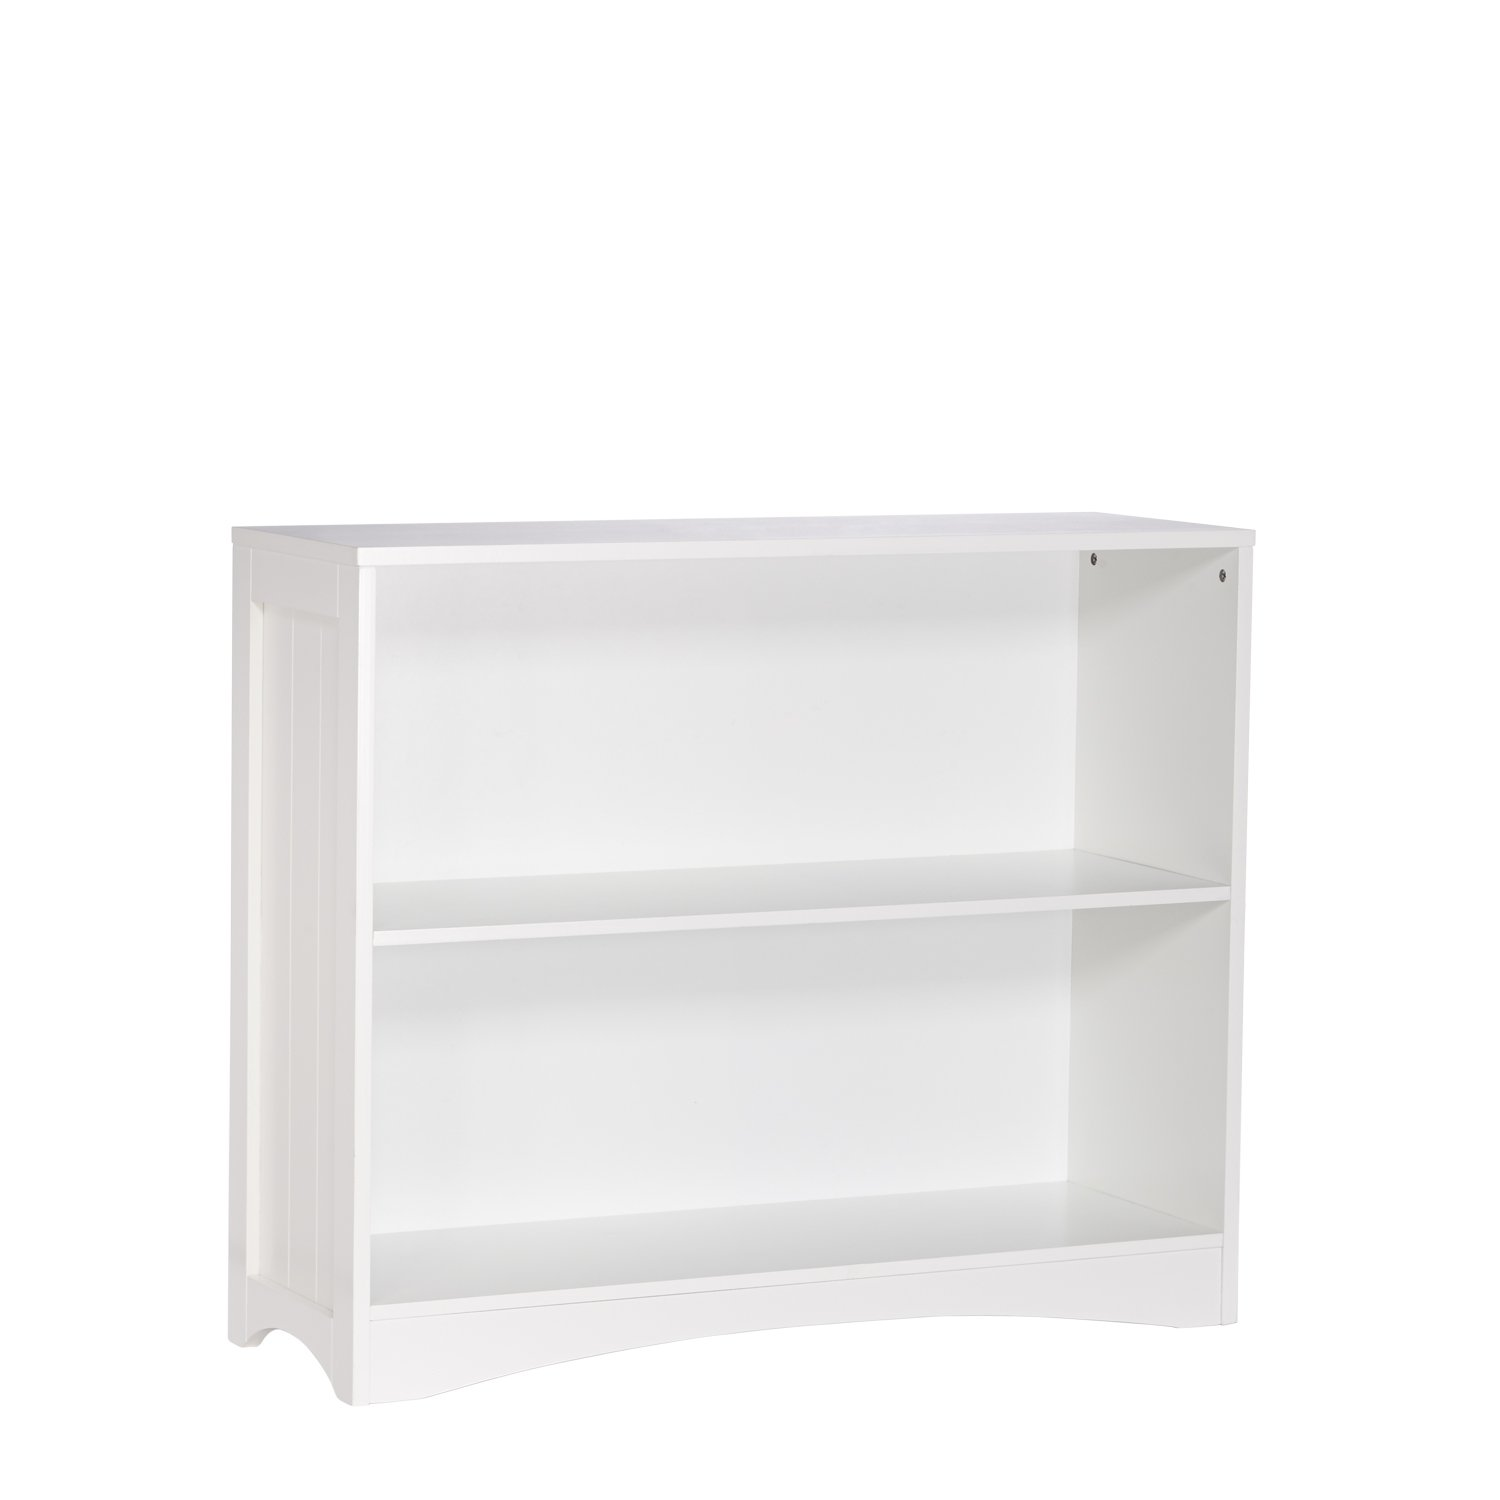 book target bookshelves shelves mounted small wall size to glass customize doors bookcases bookshelf ikea moulding full shelving billy horizontal bookcase walmart adding of with